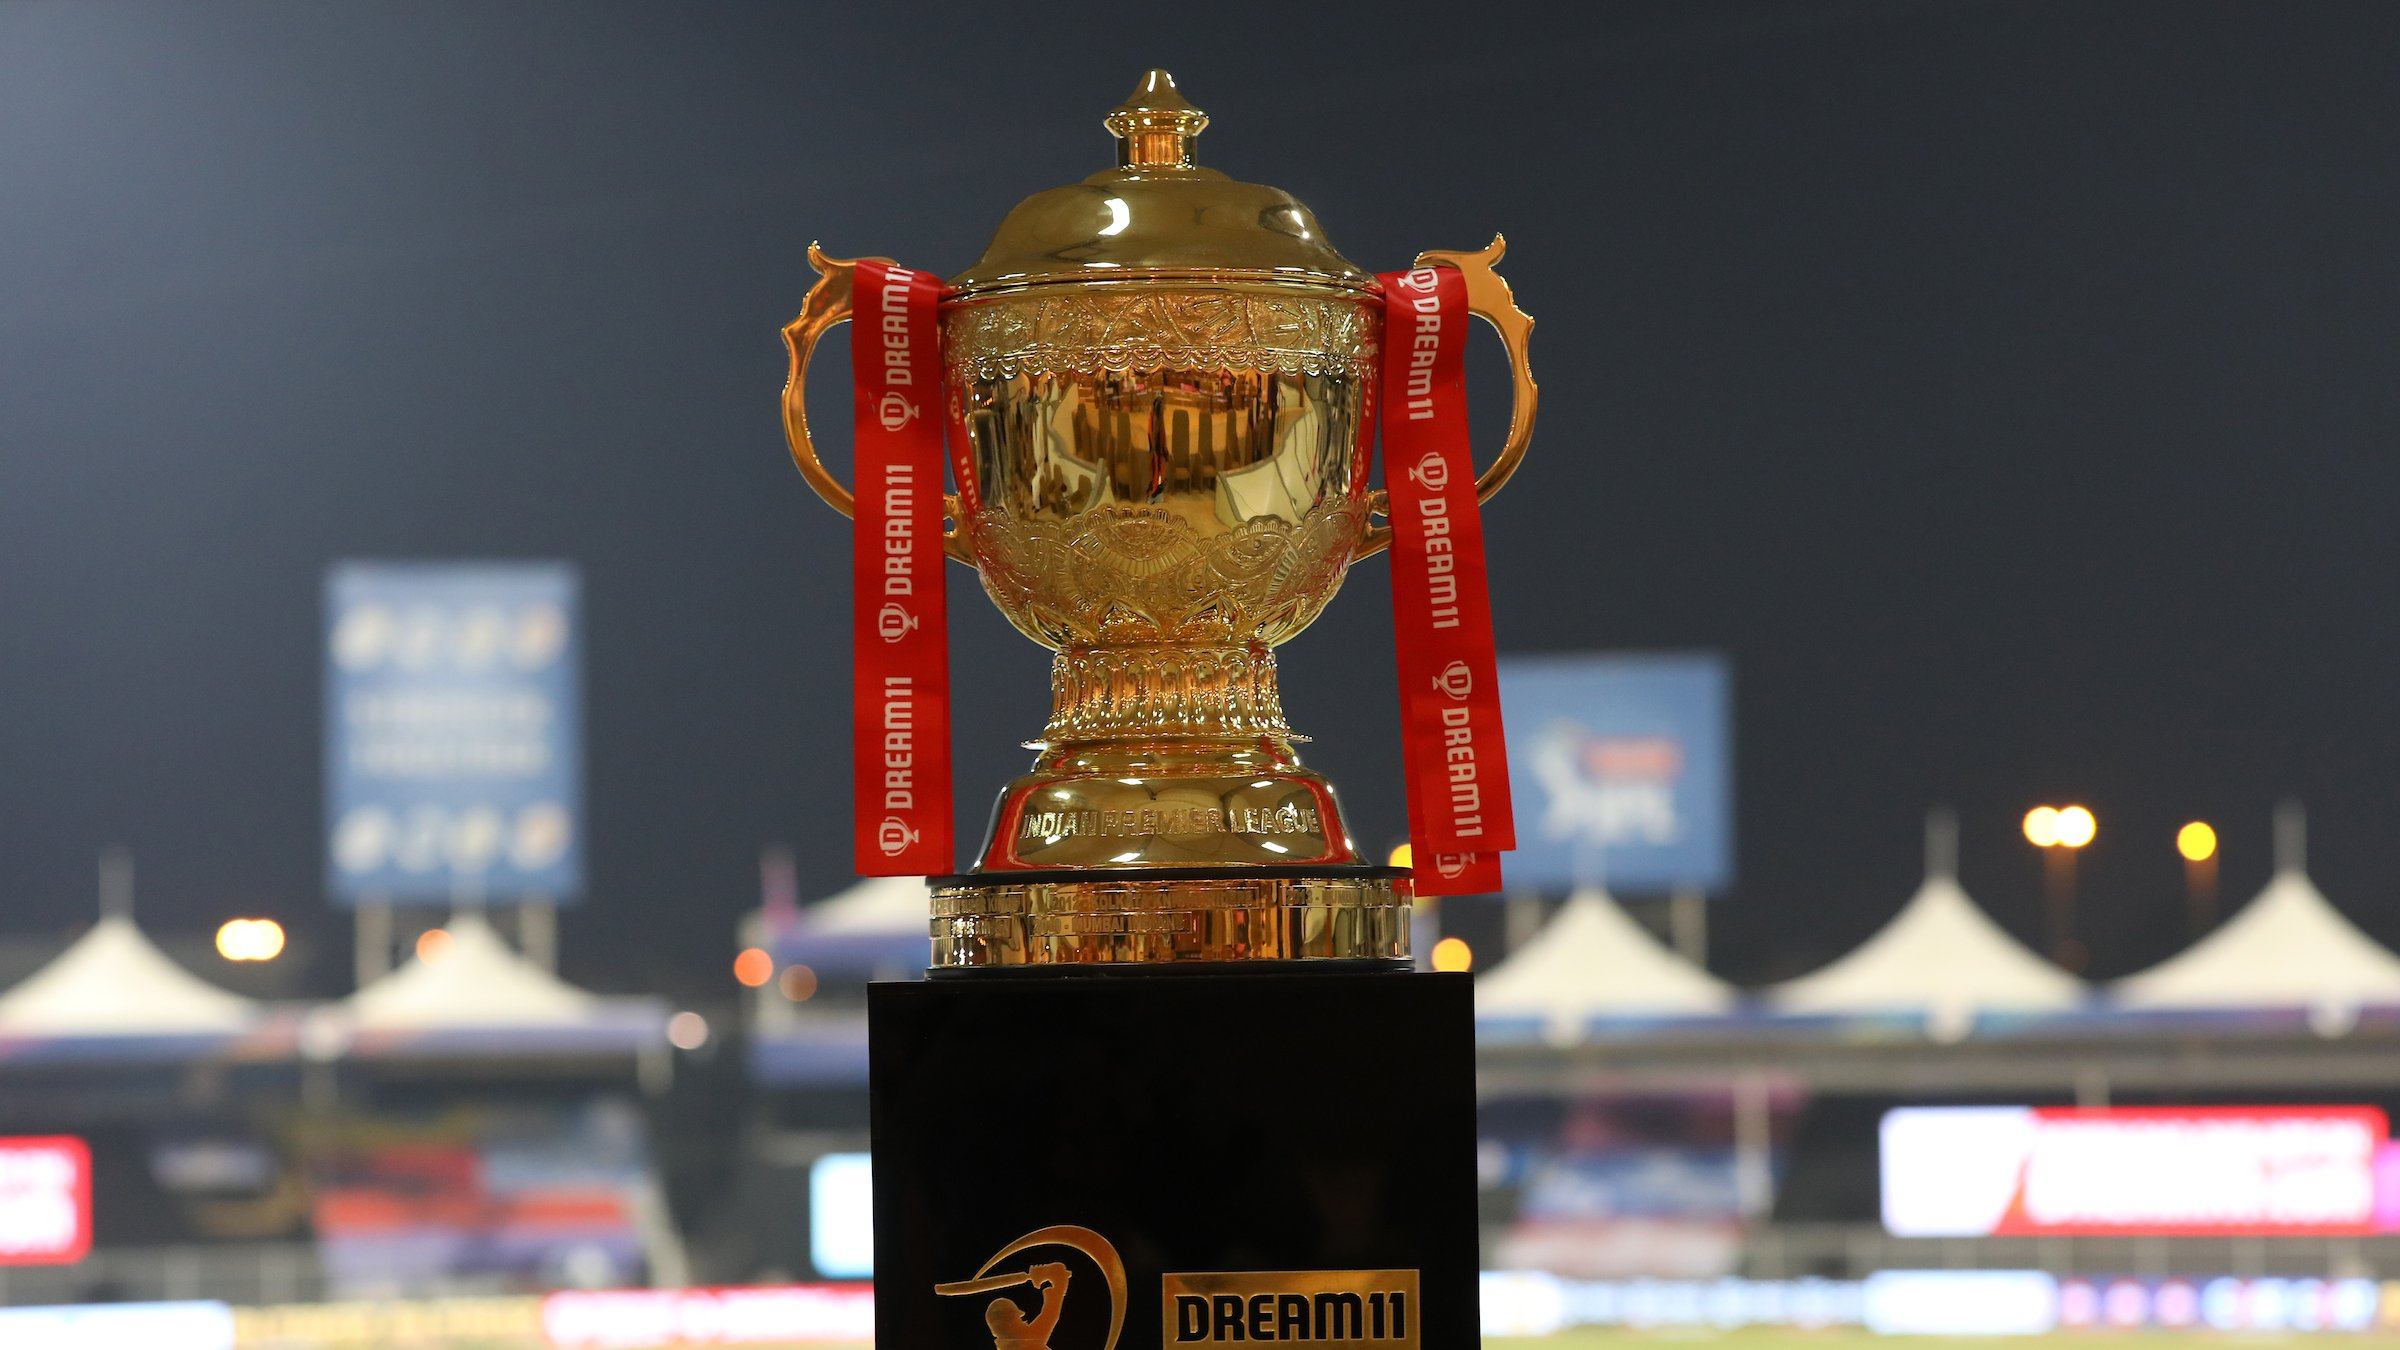 IPL 2021 will be held in India said by BCCI